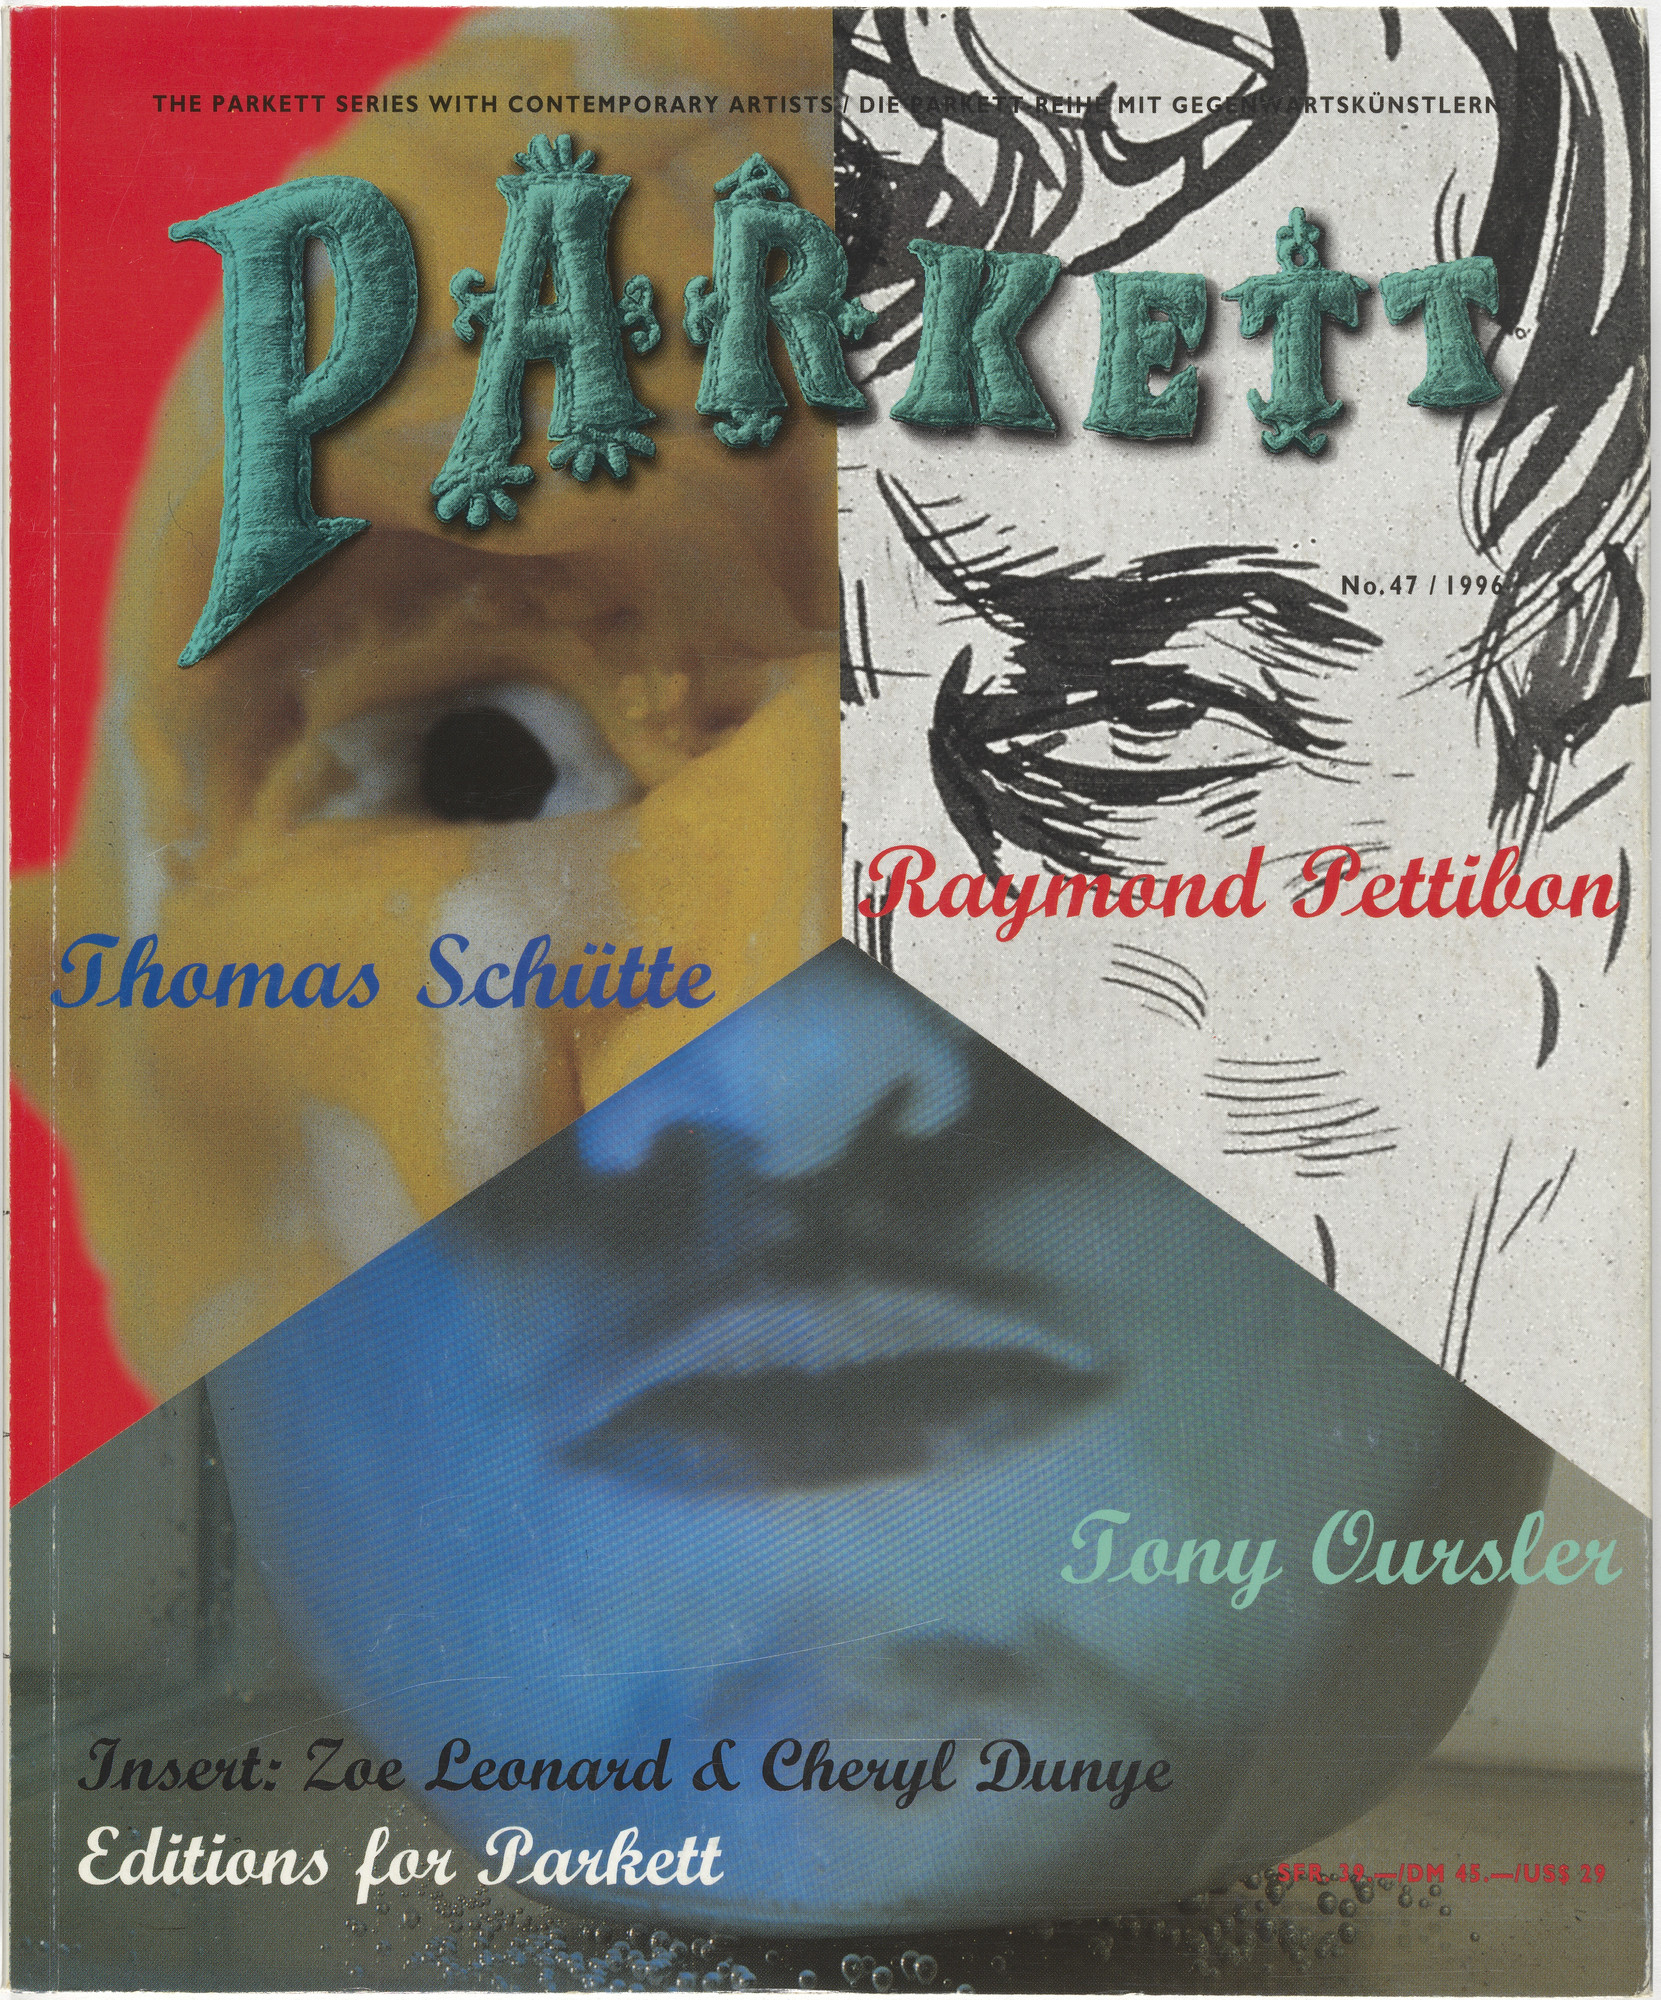 Various Artists, Tony Oursler, Raymond Pettibon, Thomas Schütte. Parkett no. 47. 1996